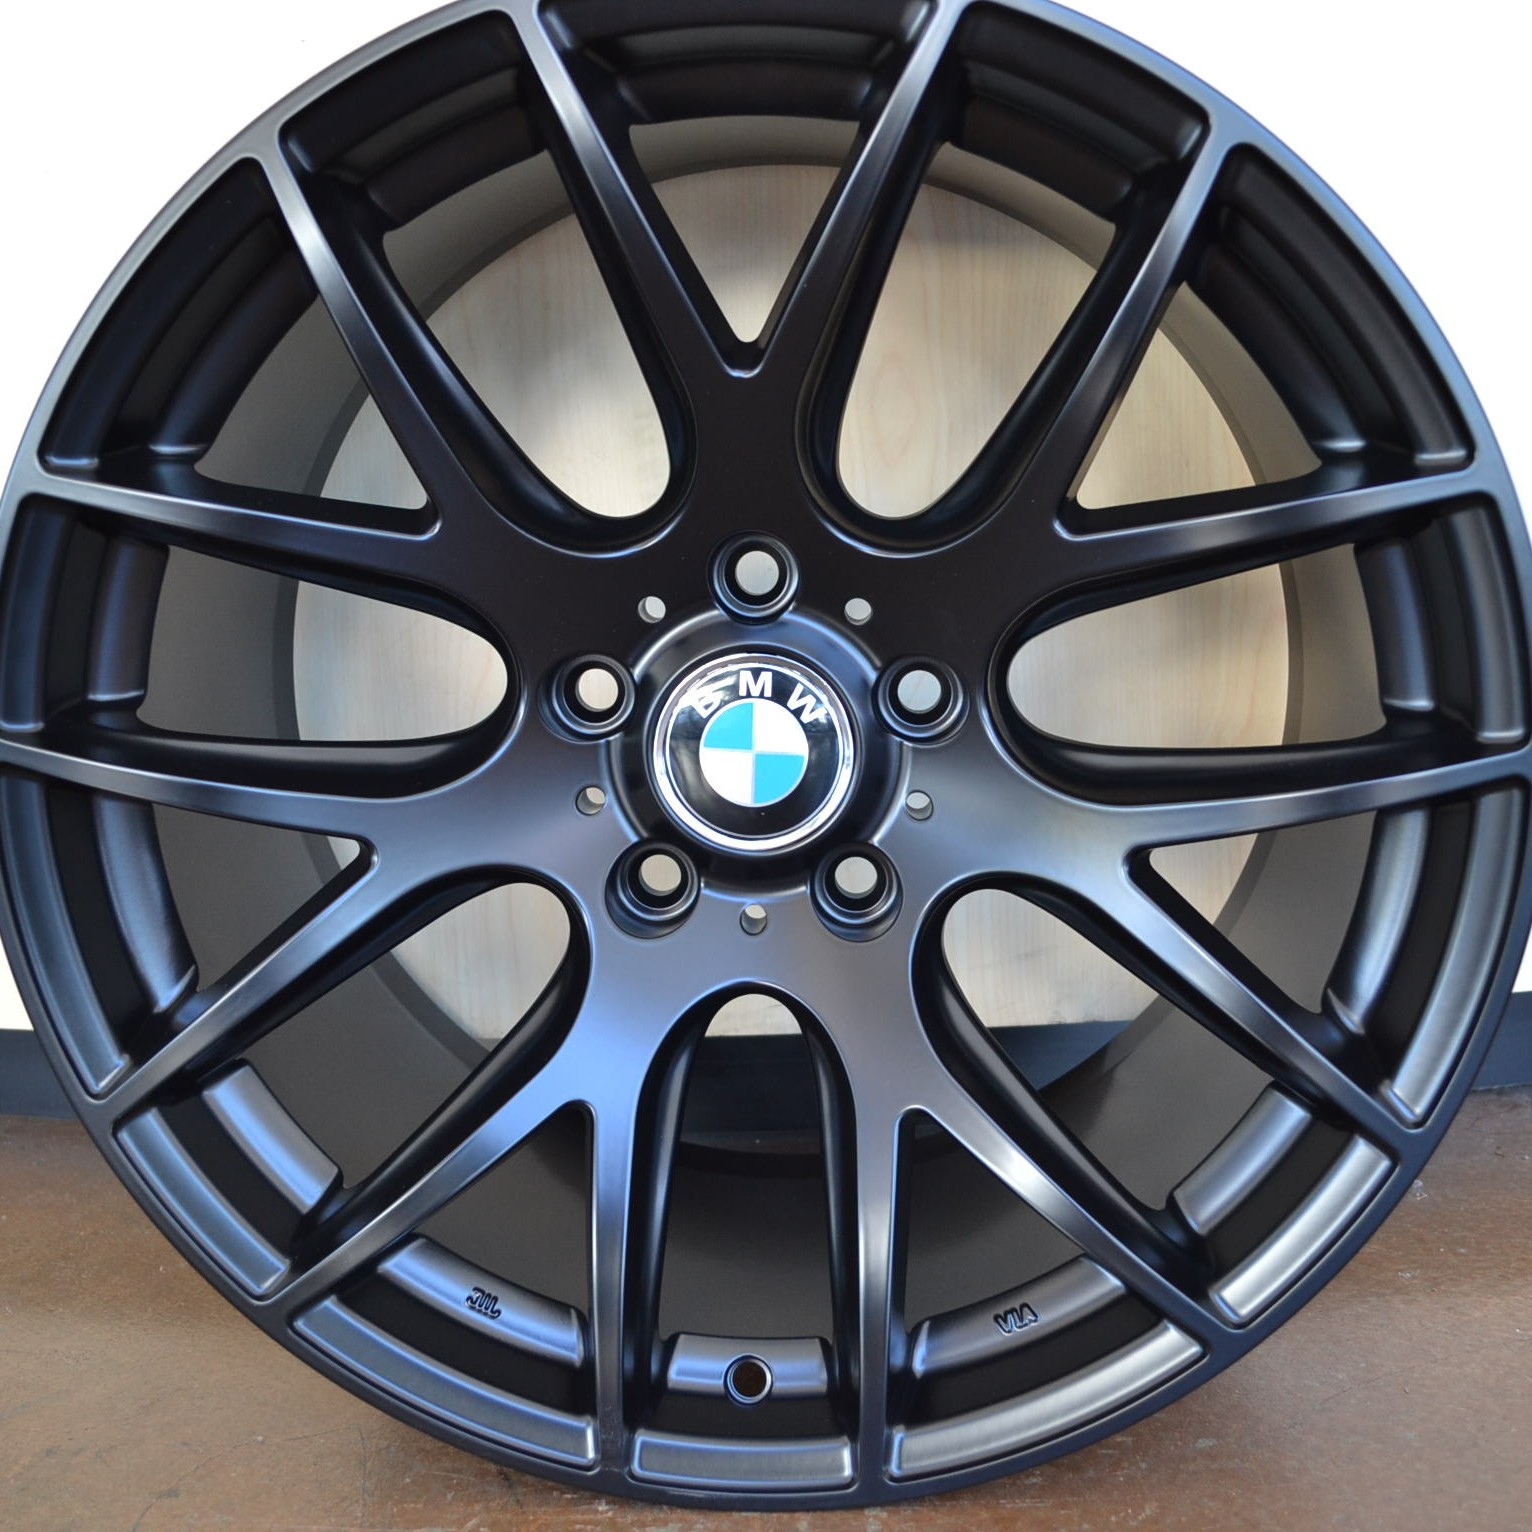 Black Bmw 528i Rims Car Photos Catalog 2018